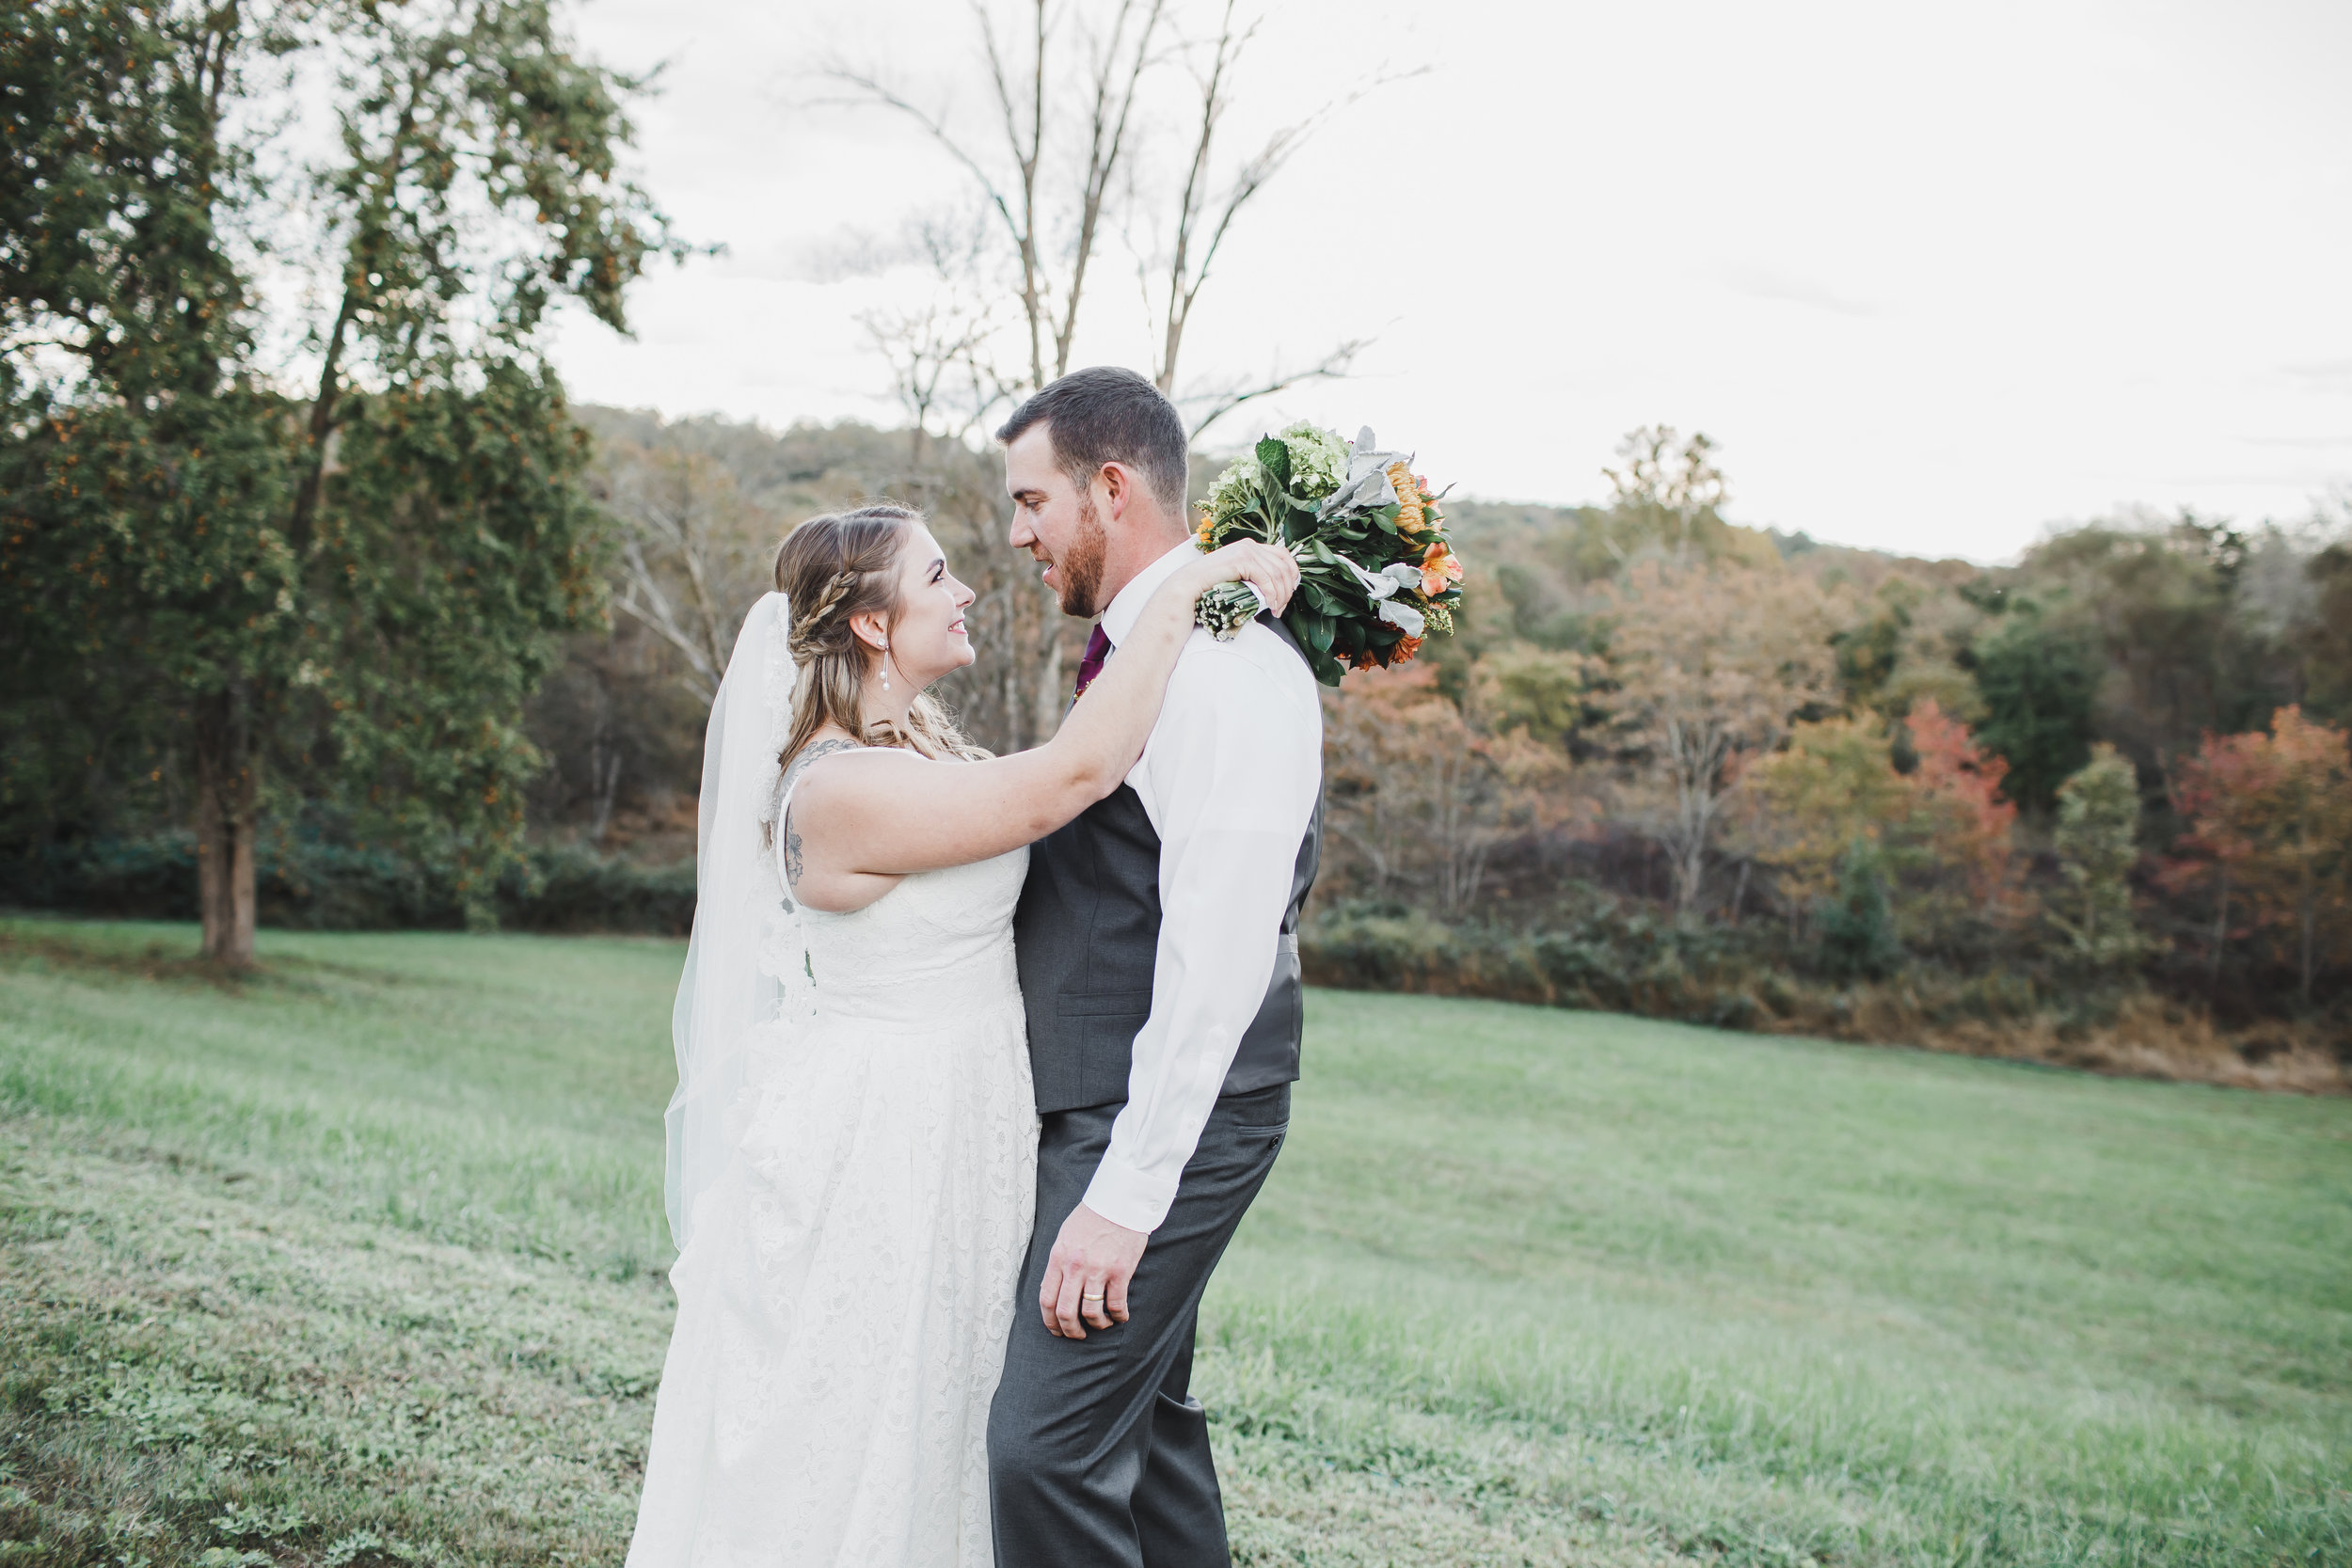 Fling - Virginia Wedding Photographer - Photography by Amy Nicole-4582-2.jpg